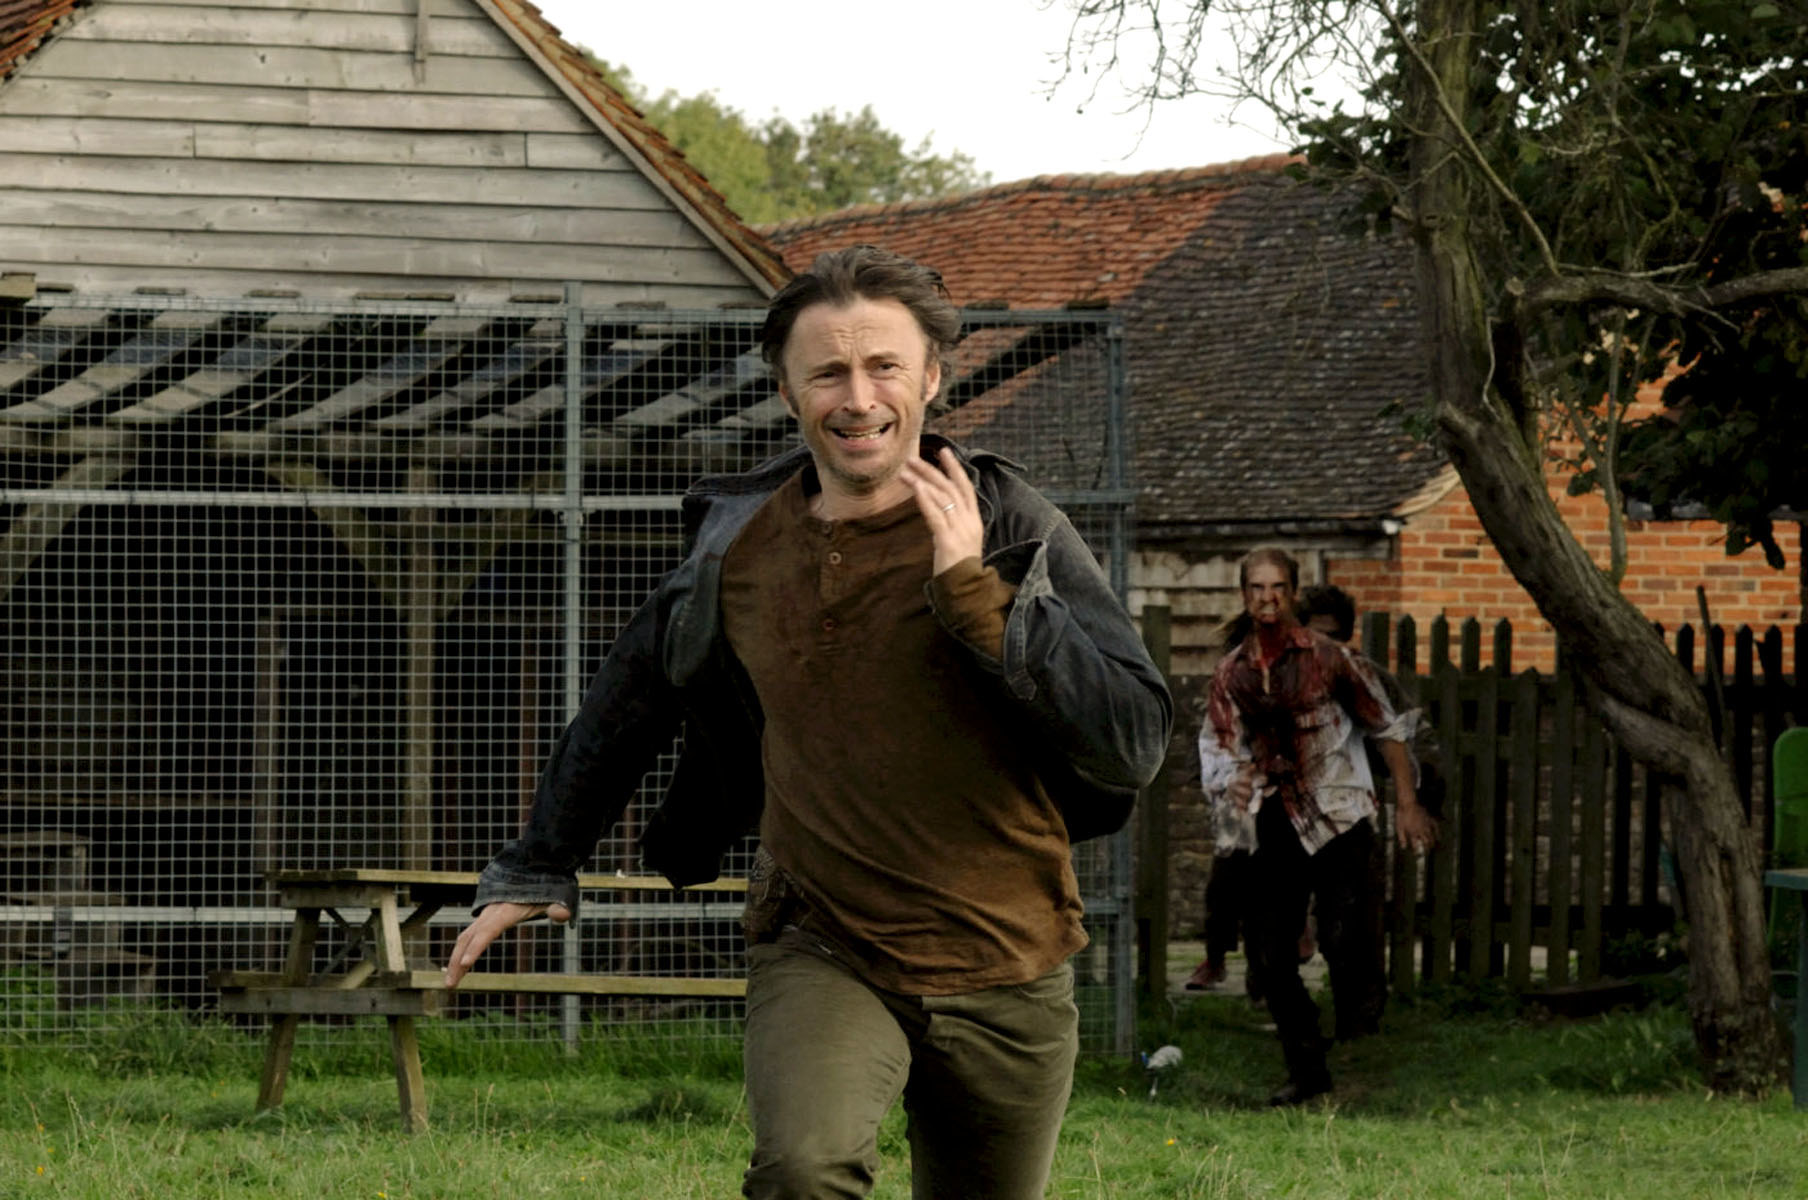 Don runs as he is chased by the infected